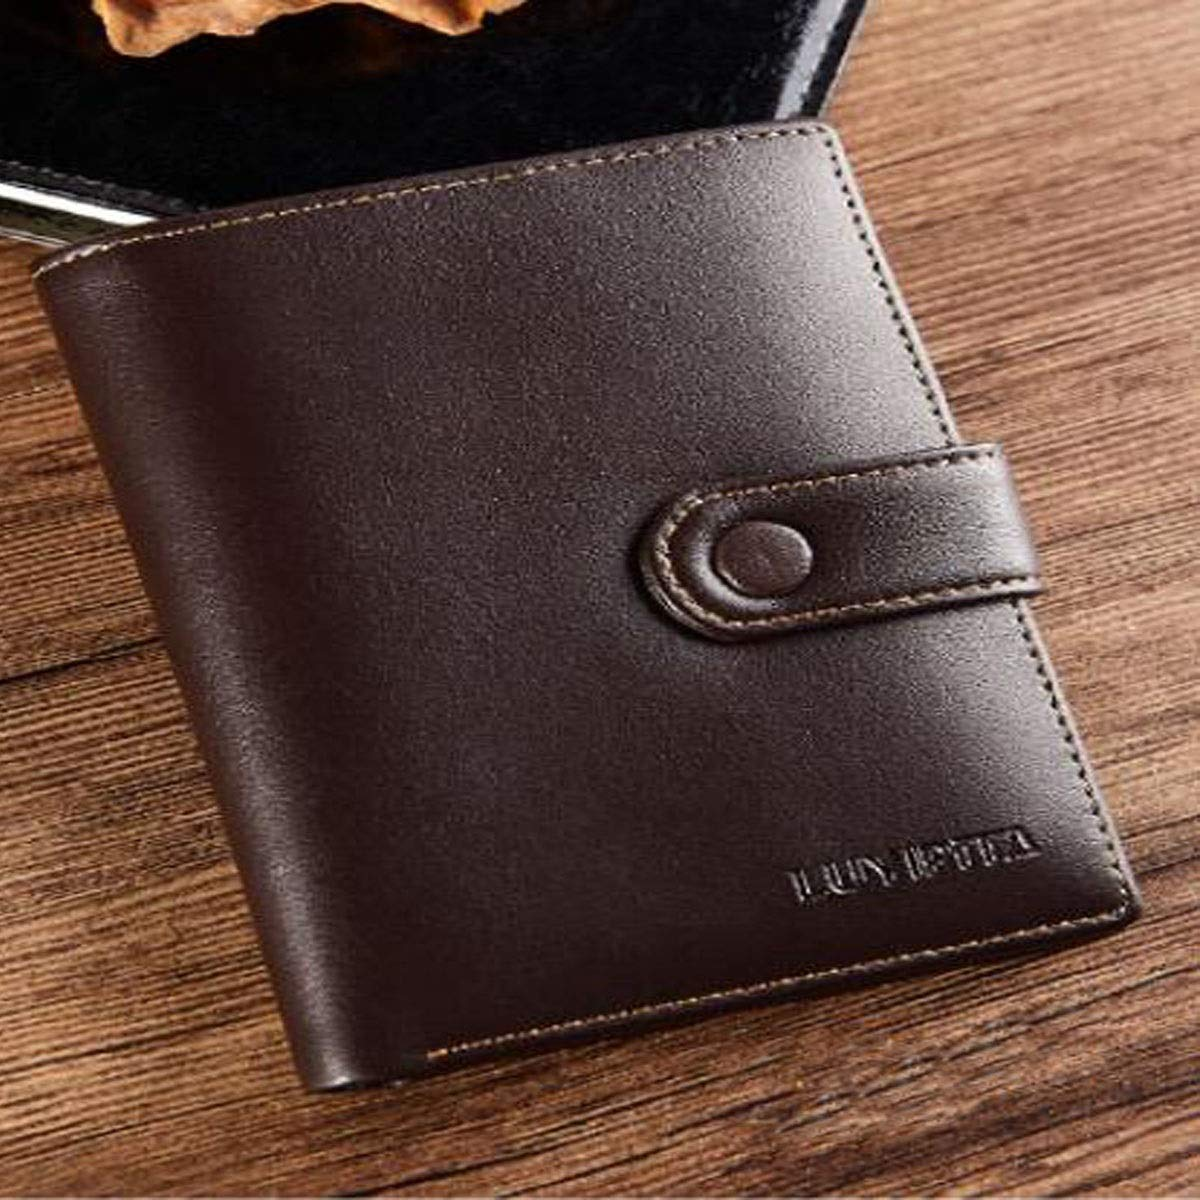 Black cm Stealth Mode Blocking Leather Wallet Color 9.6 1.8 12.8 Suitable for Mens Fashion Short Ultra-Thin Youth New Leather Wallet Kalmar RFID Travel Wallet Size